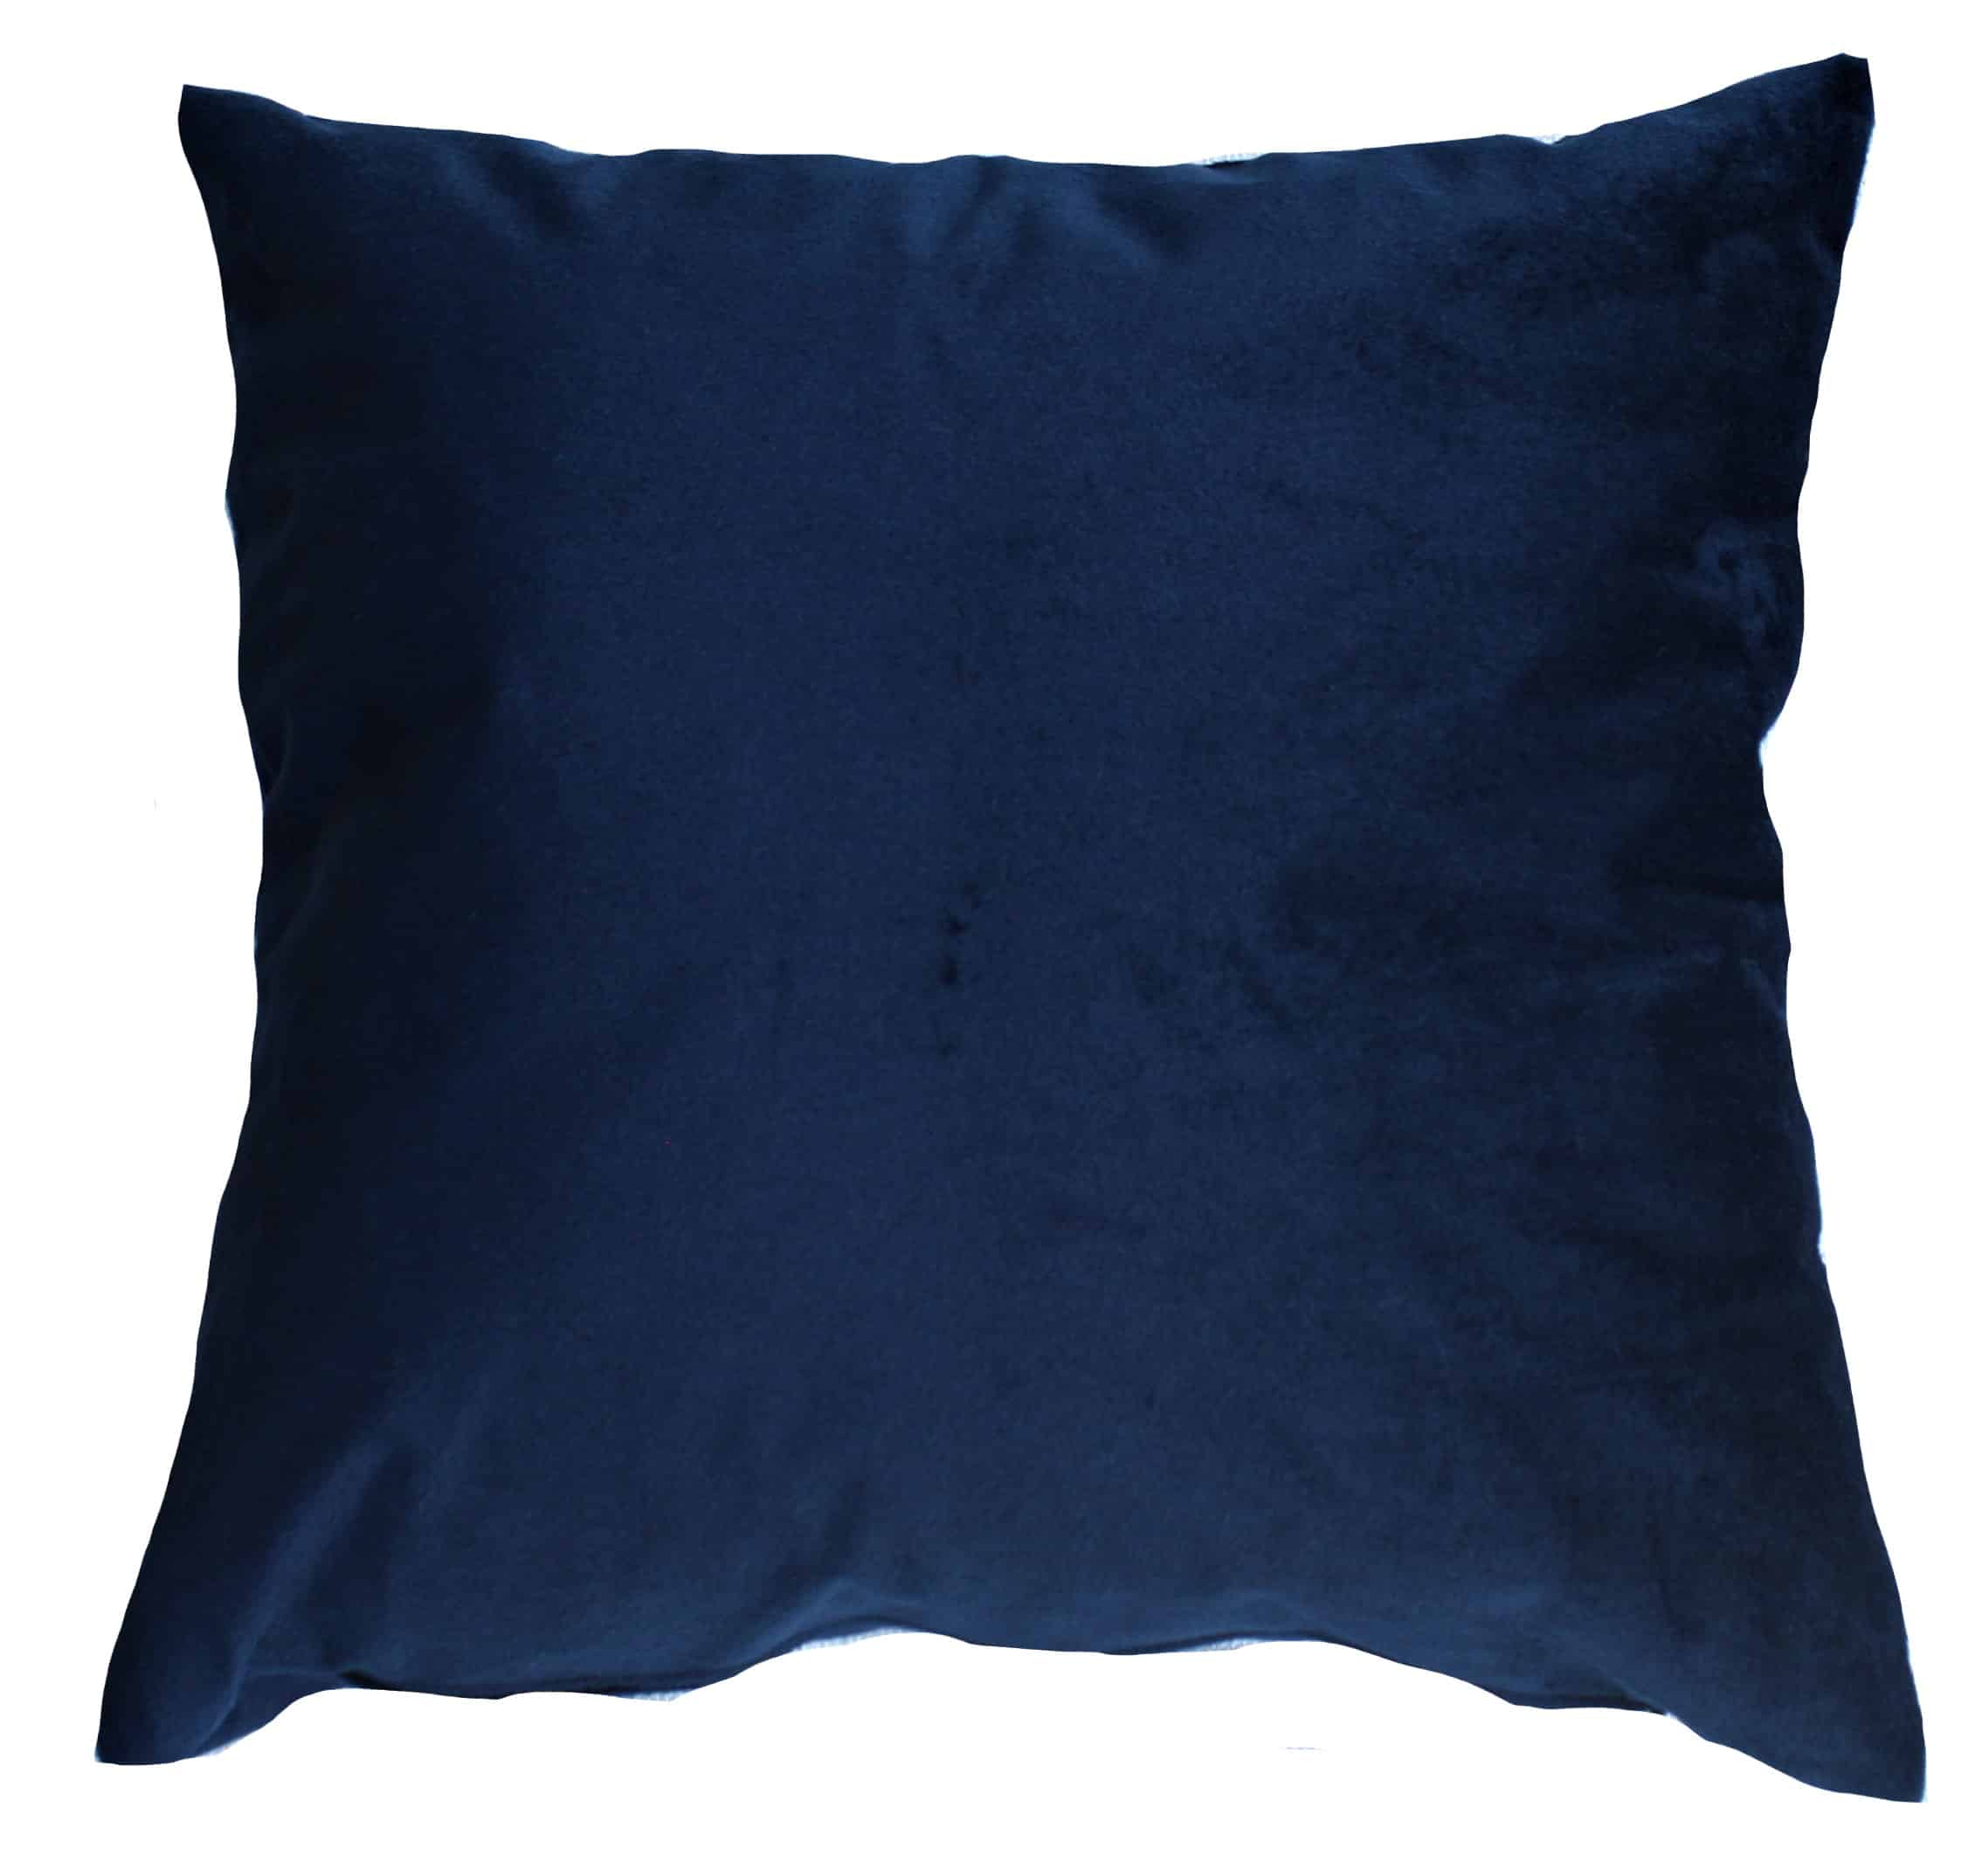 Blue Velvet Cushion Navy Blue Velvet Cushion Cover